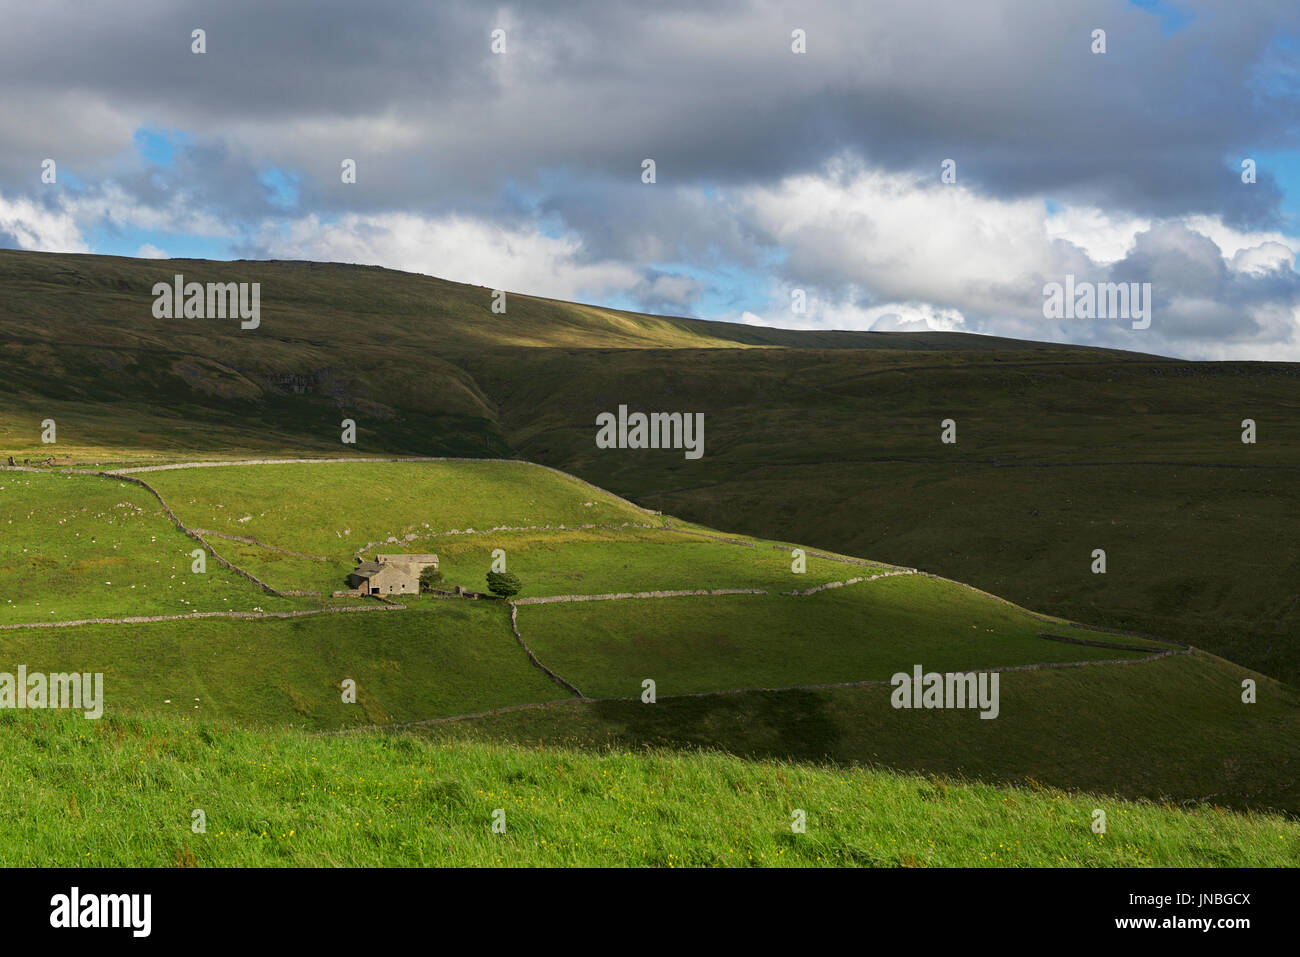 Farmhouse in Coverdale, Yorkshire Dales National Park, North Yorkshire, England UK - Stock Image